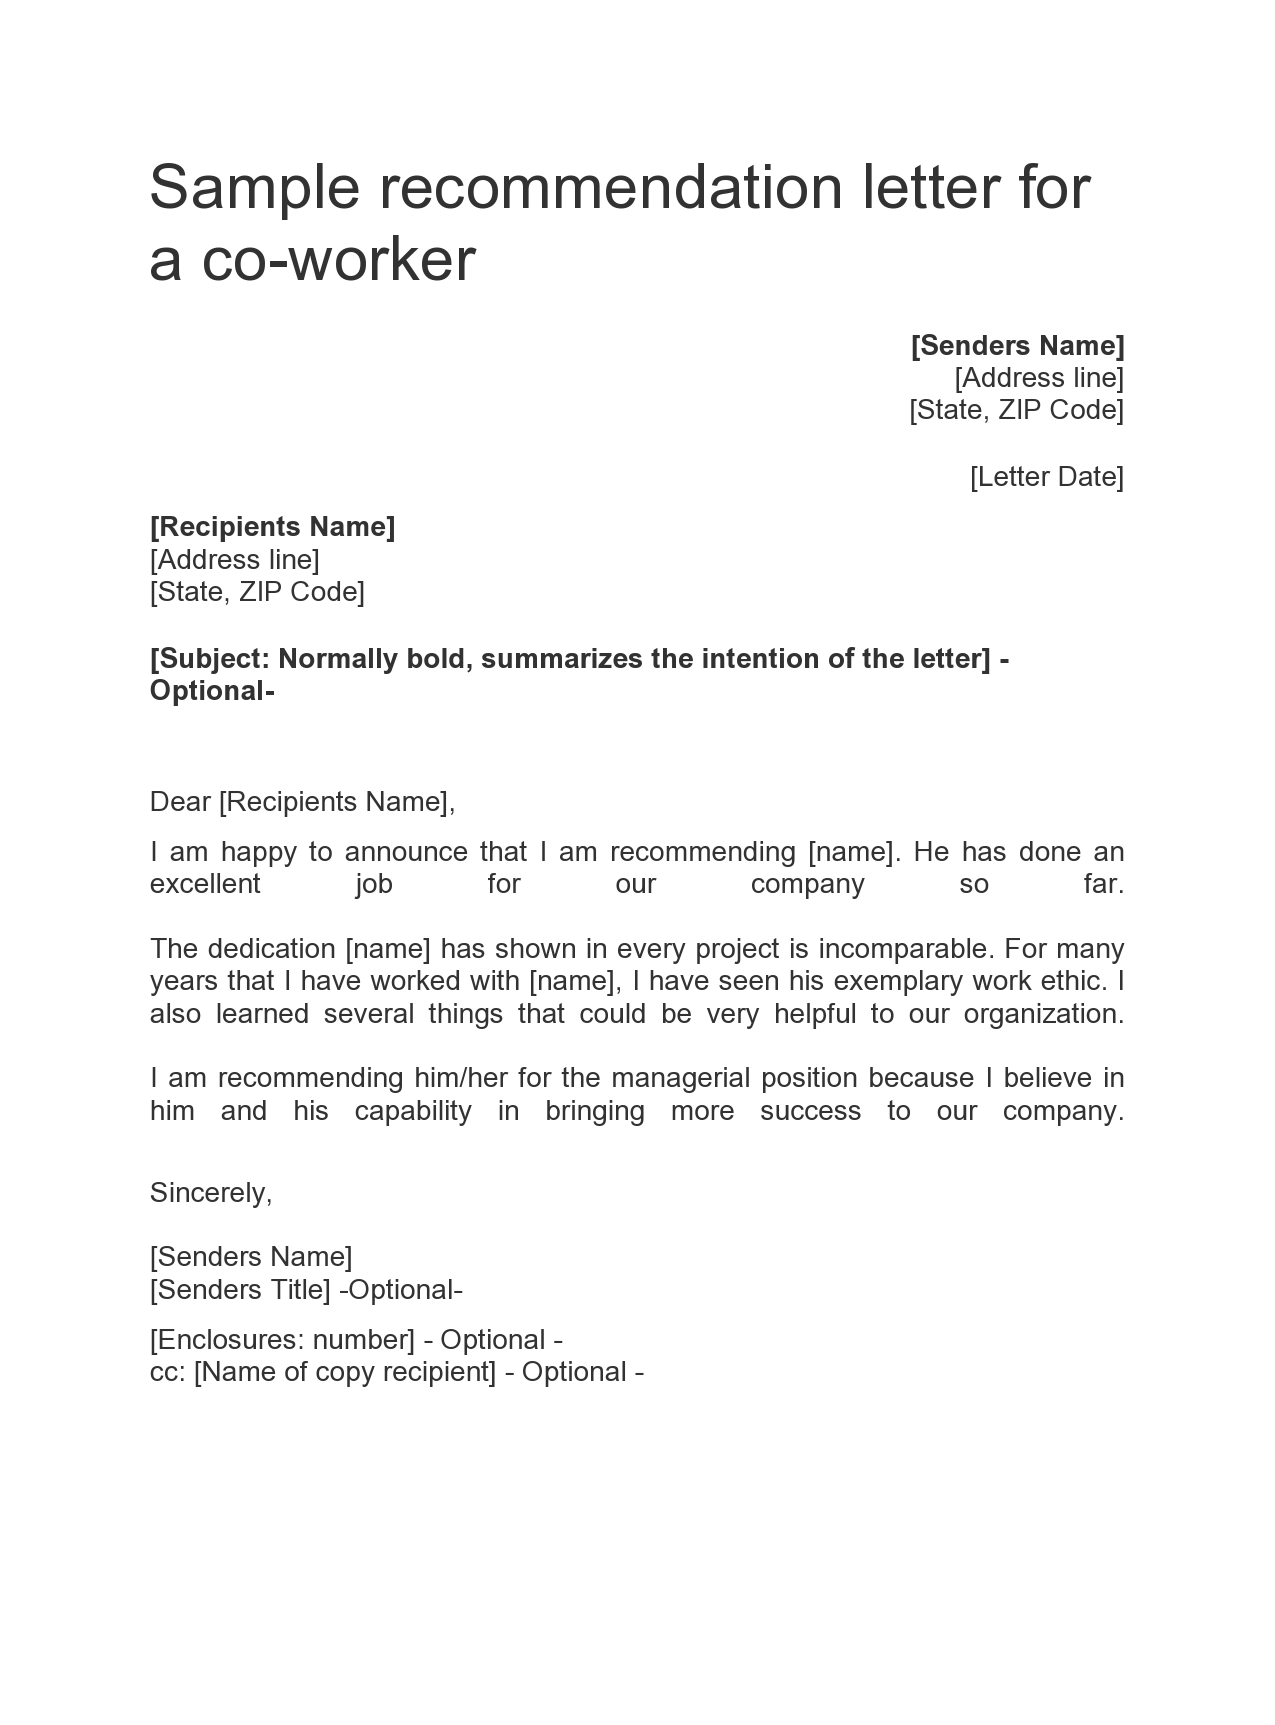 Sample Letter Of Recommendation For Job from templatearchive.com